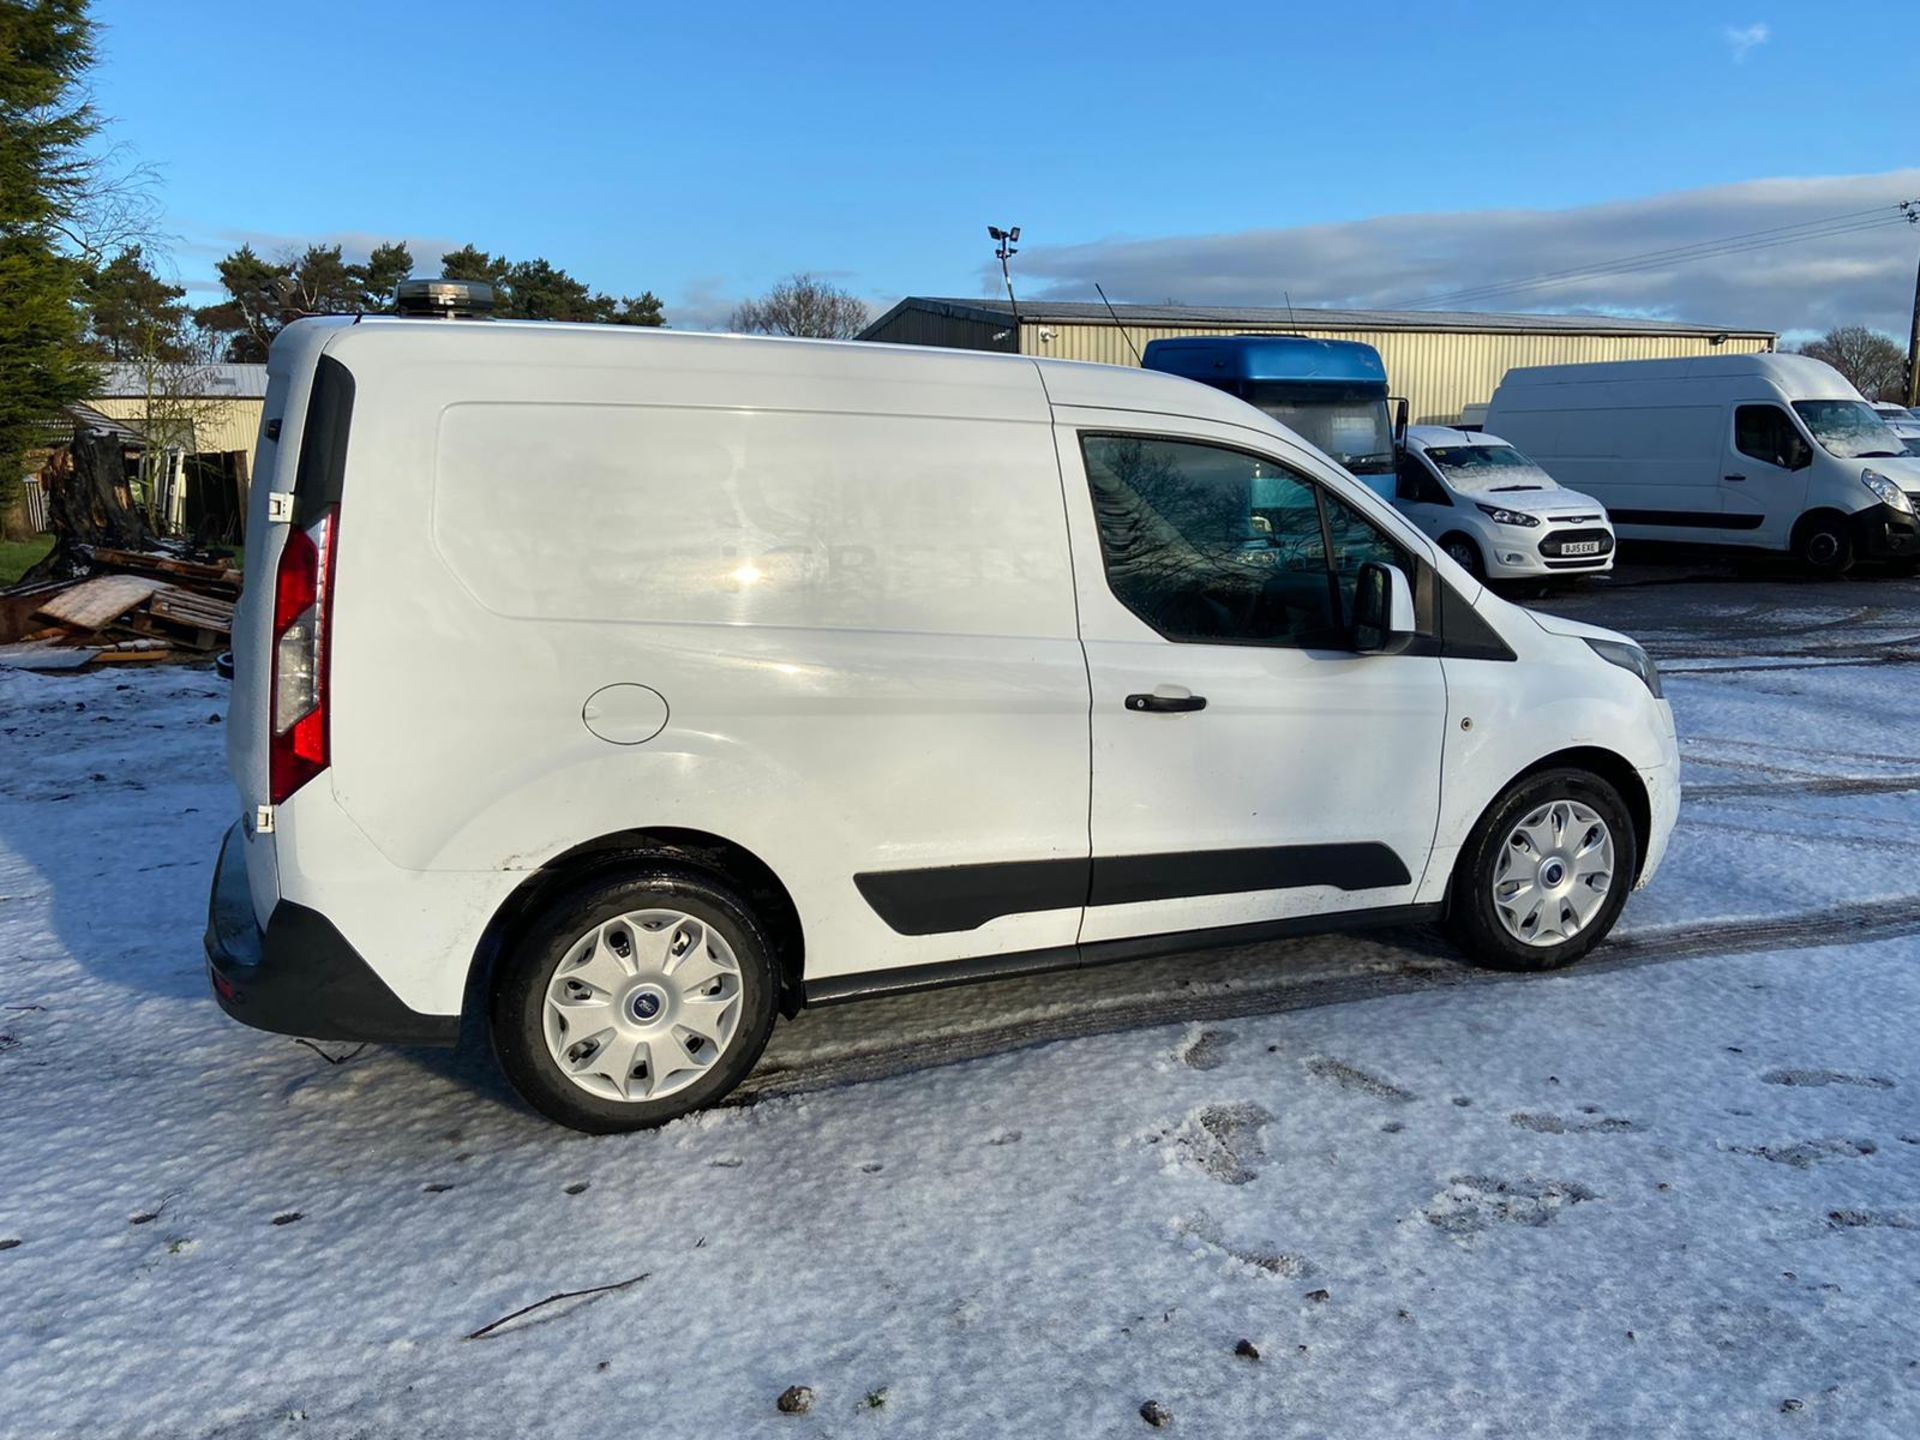 2015/64 REG FORD TRANSIT CONNECT 200 ECONETIC 1.6 DIESEL WHITE PANEL VAN, SHOWING 0 FORMER KEEPERS - Image 7 of 10